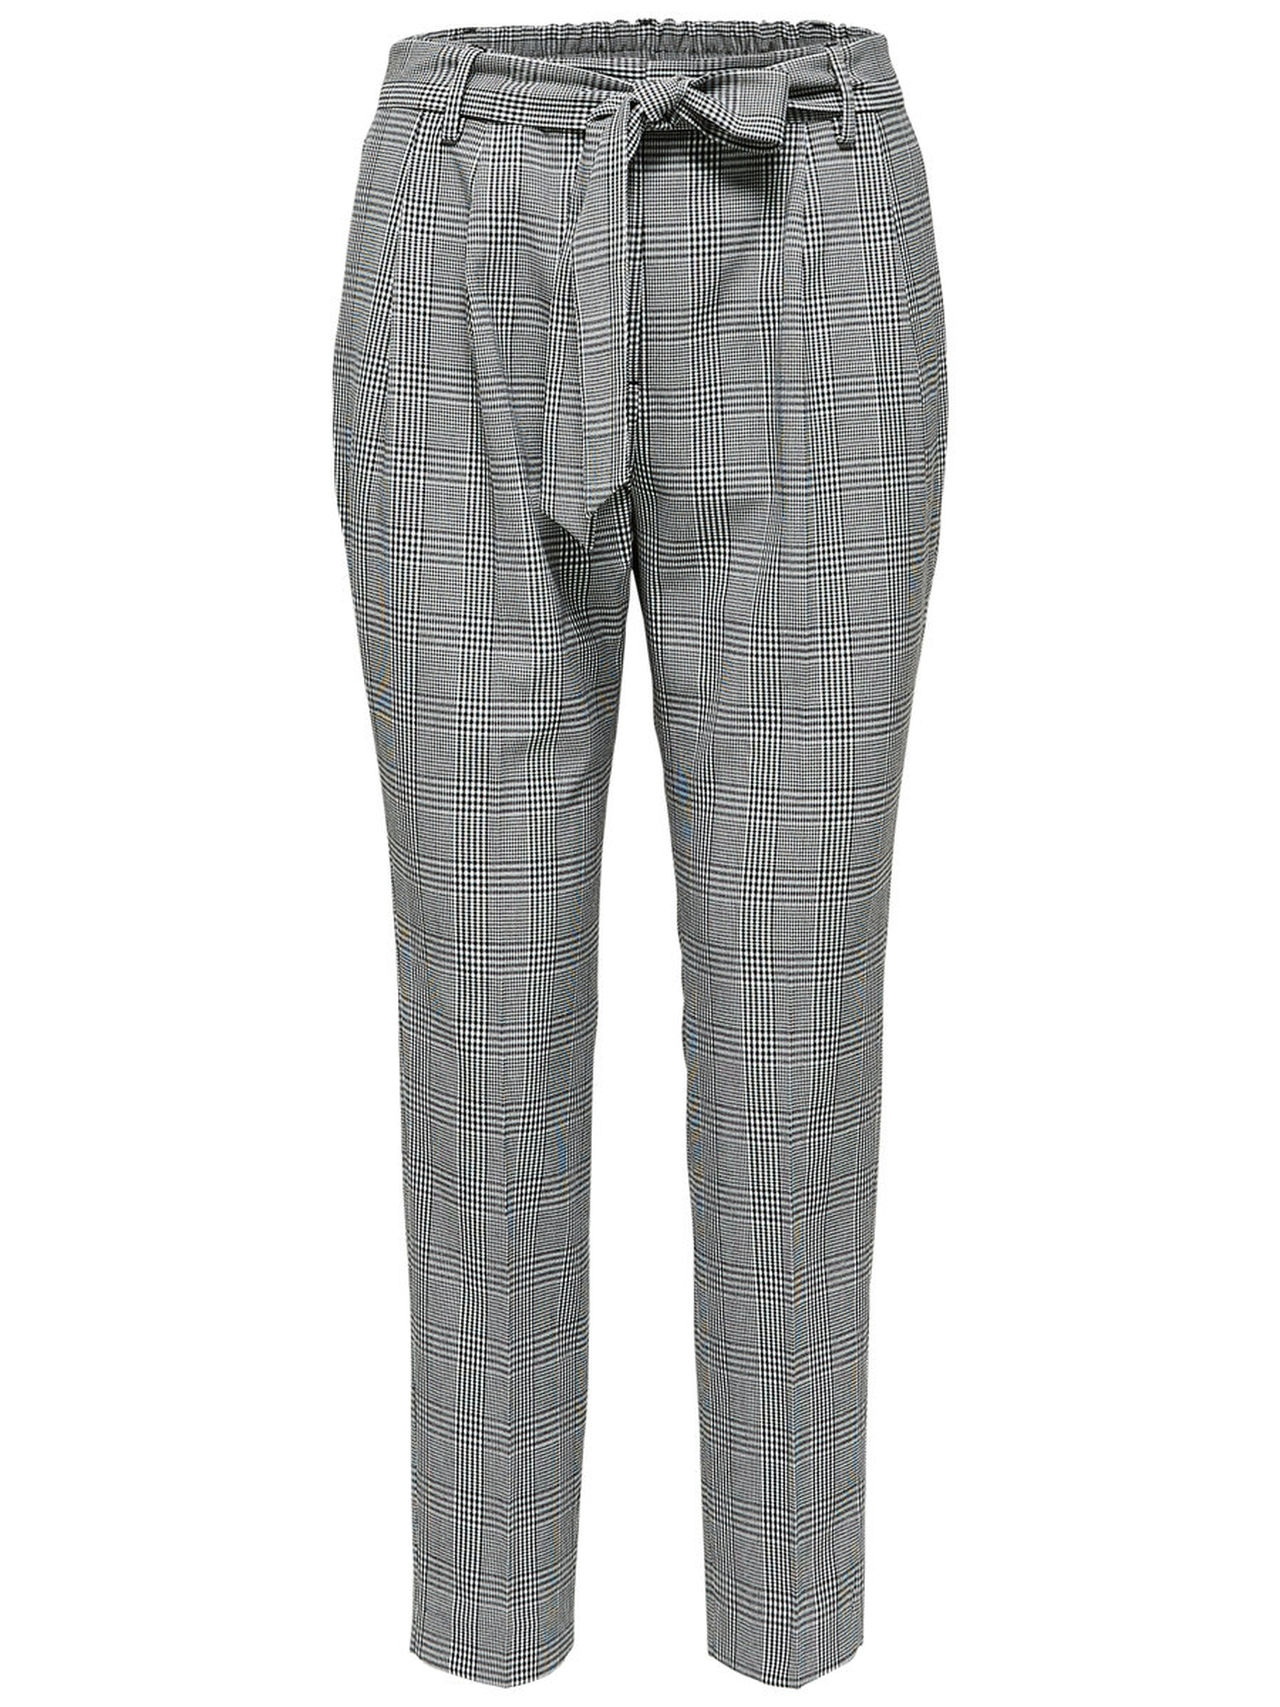 SELECTED Check – Trousers Kvinna Svart